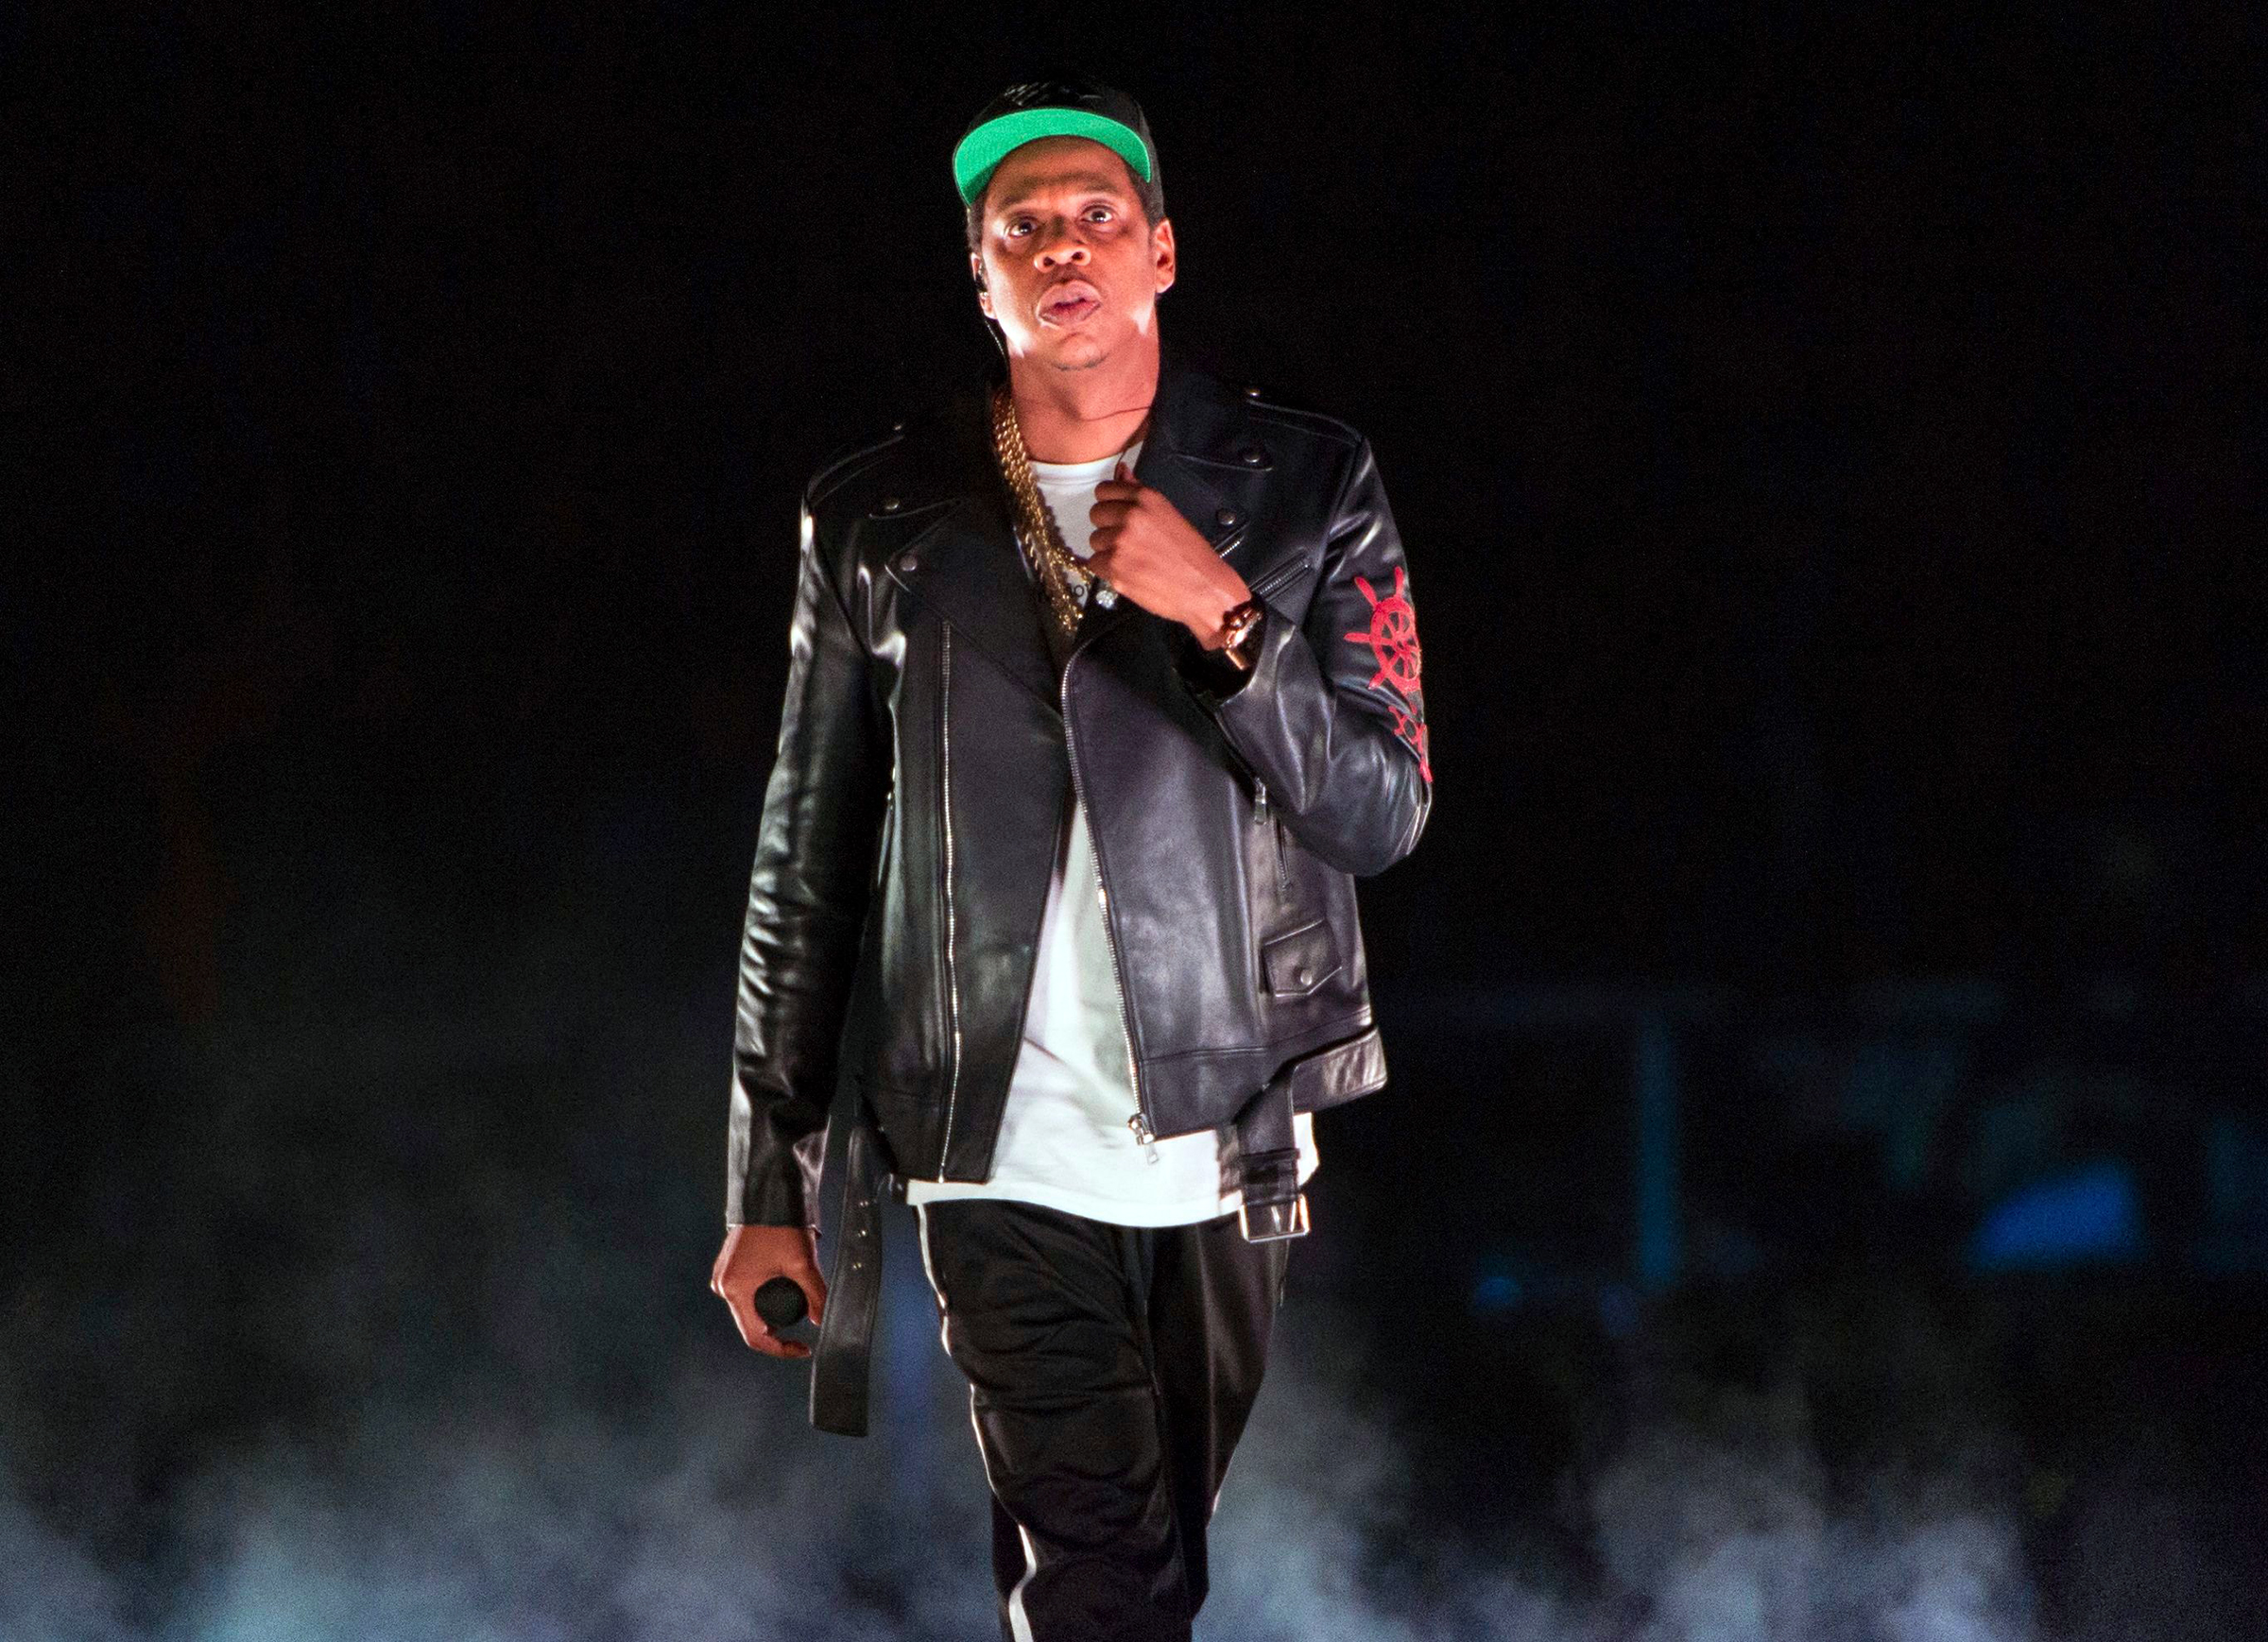 """Jay-Z performs on the 4:44 Tour at Barclays Center in New York. Jay-Z and Beyonce have released a joint album that touches on the rapper's disgust at this year's Grammy Awards and features a shout out from their daughter Blue Ivy to her siblings. The pair released the nine-track album """"Everything Is Love"""", on the Tidal music streaming service that Jay-Z partially ownsMusic Jay-Z-Beyonce Album, New York, USA - 28 Nov 2017"""